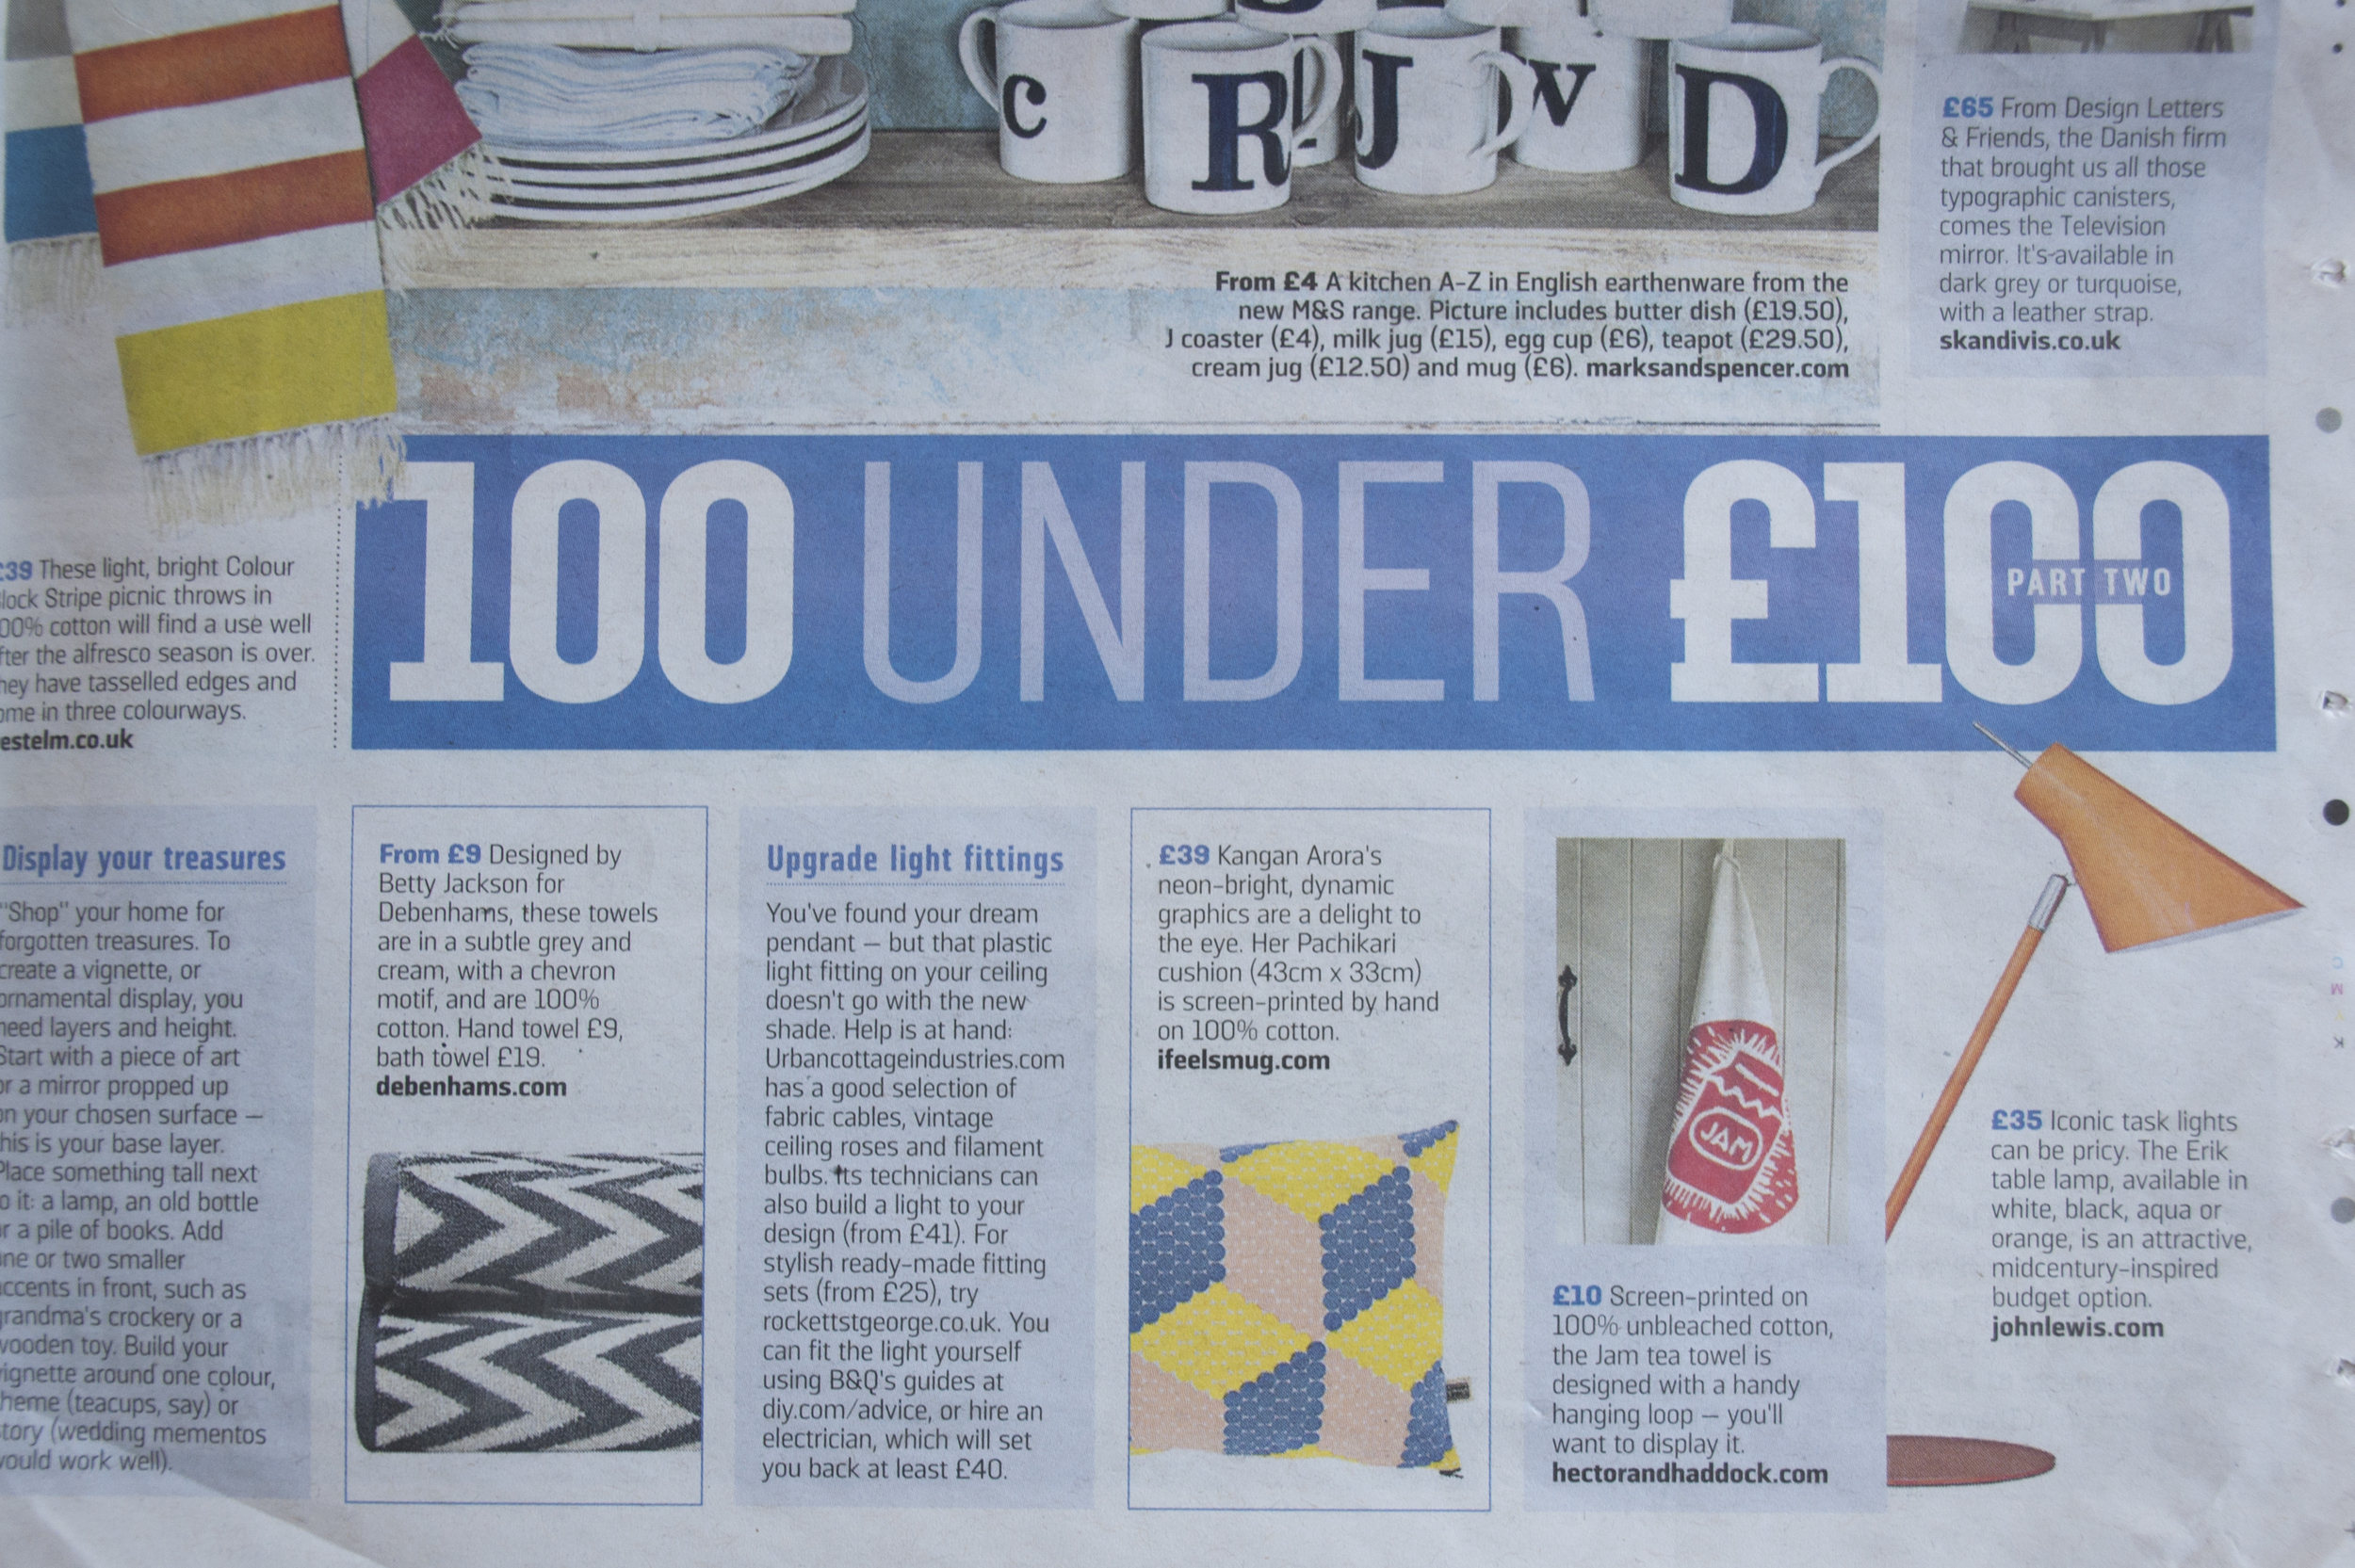 Sunday Times Home - Under £100 cropped.jpg